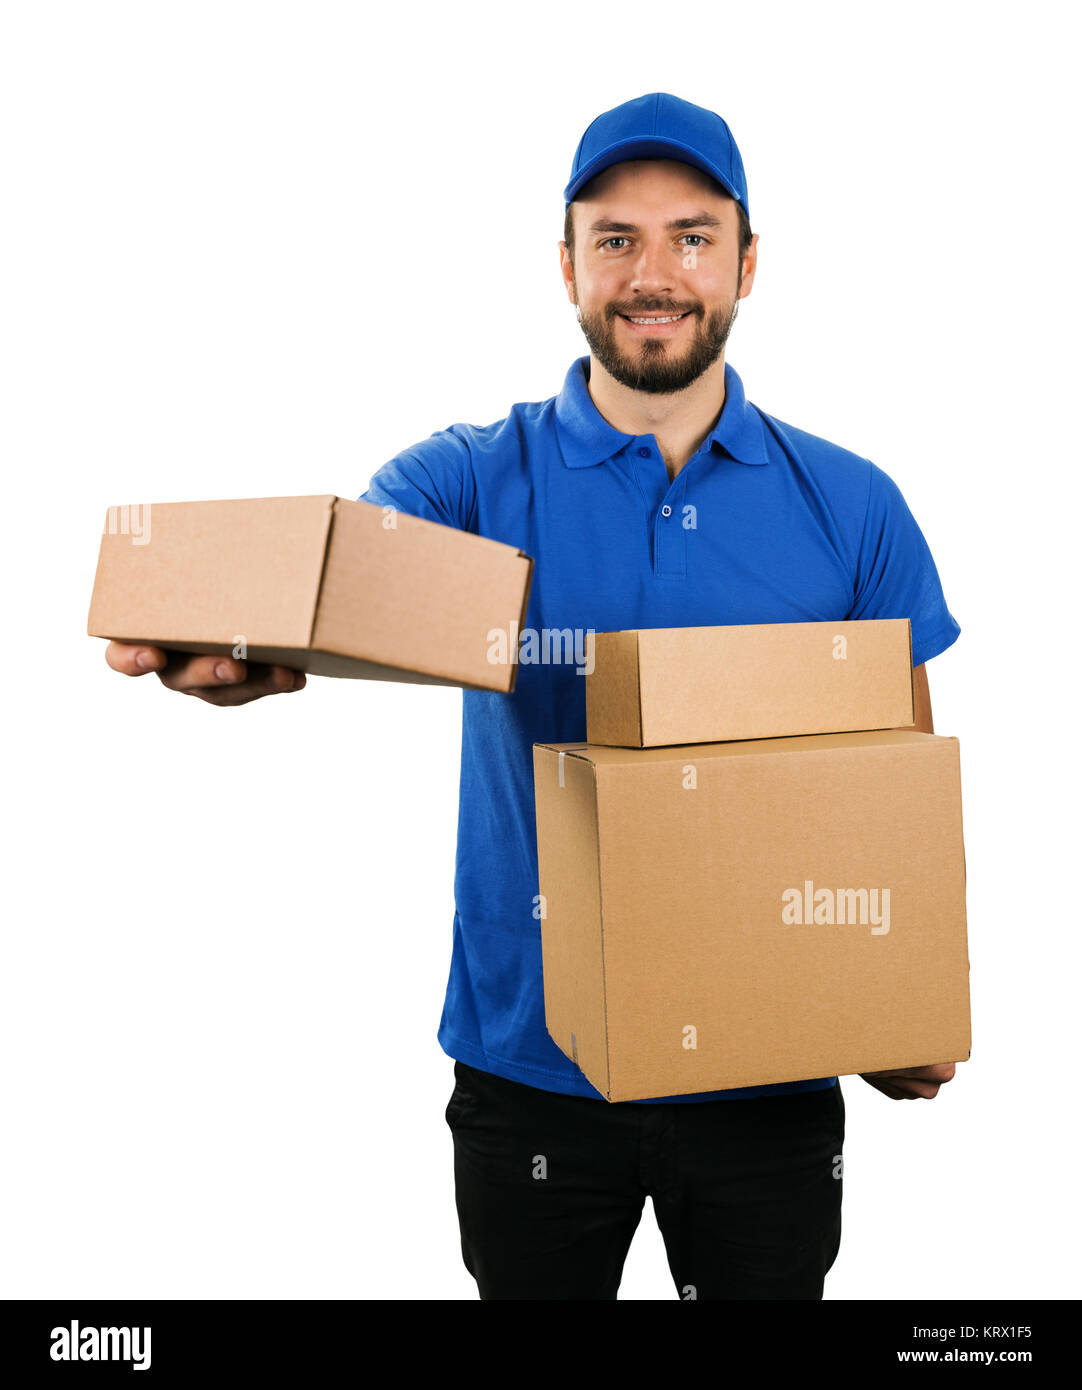 delivery courier giving cardboard shipping box. isolated on white background - Stock Image